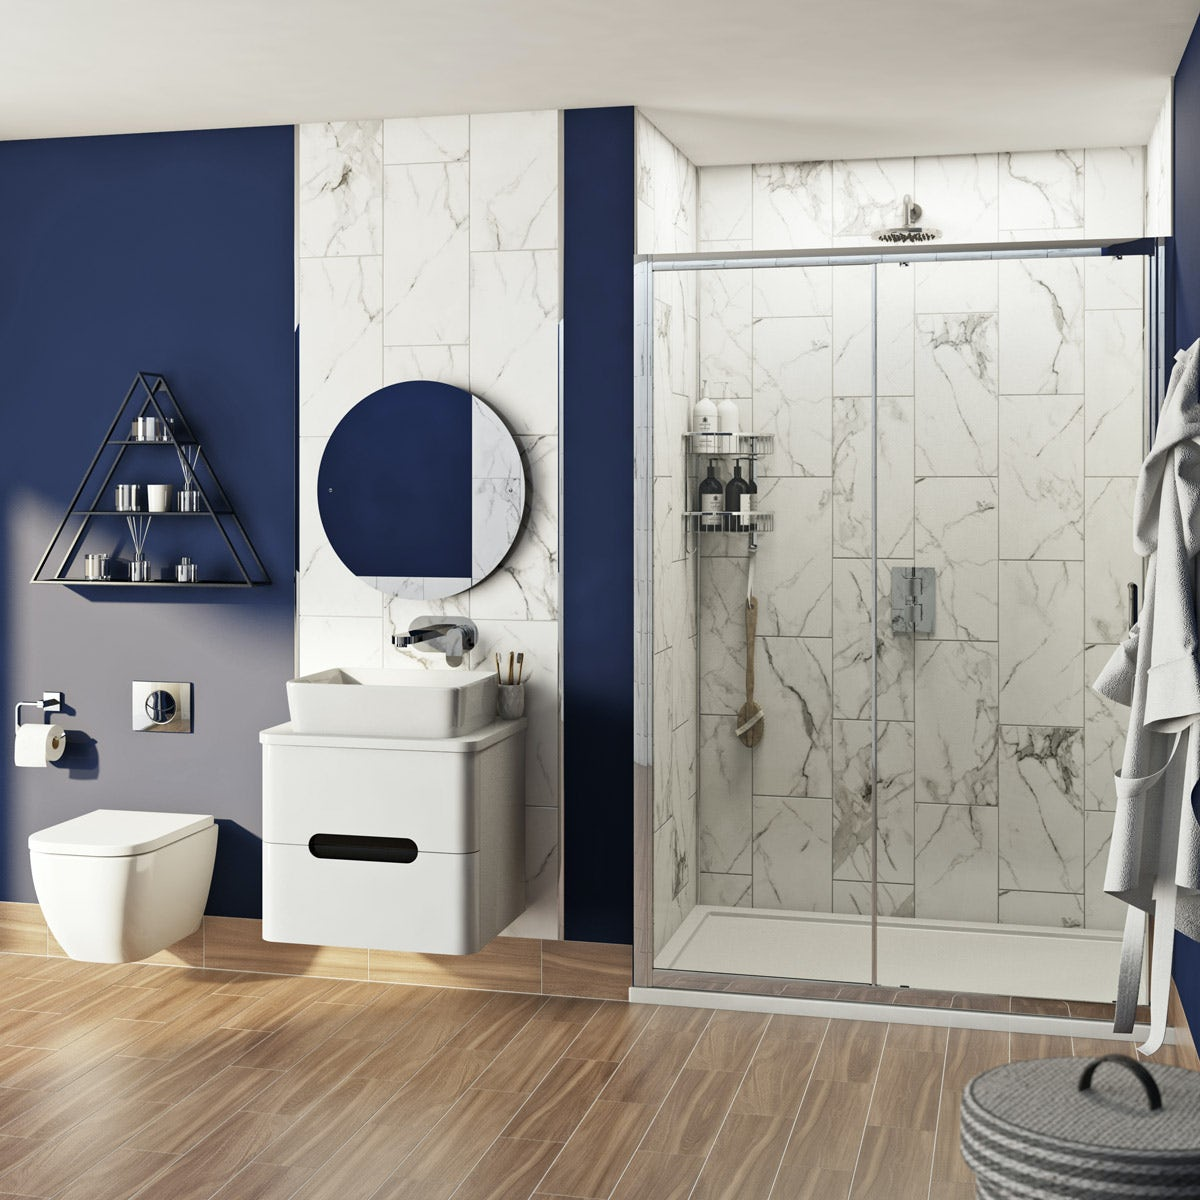 Mode Ellis complete bathroom suite with shower door, tray, shower and taps 1000mm - Sold by Victoria Plum